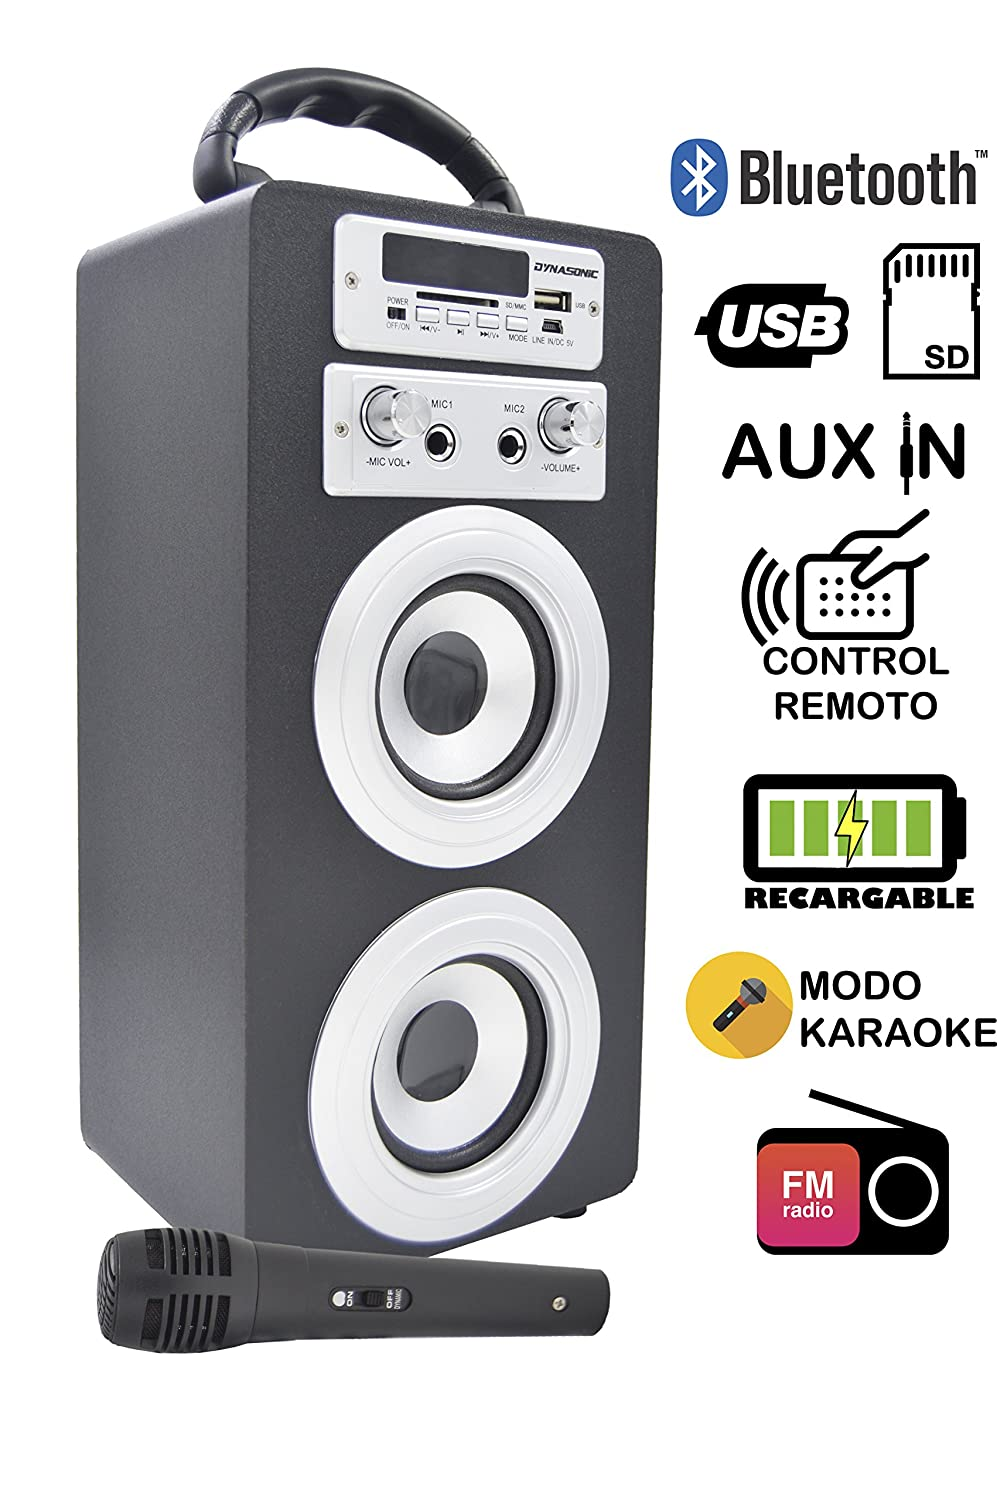 DYNASONIC Altavoz Bluetooth con modo Karaoke Bluetooth 10W, Reproductor mp3 inalámbrico portátil, lector USB SD, Radio FM - Modelo color Negro